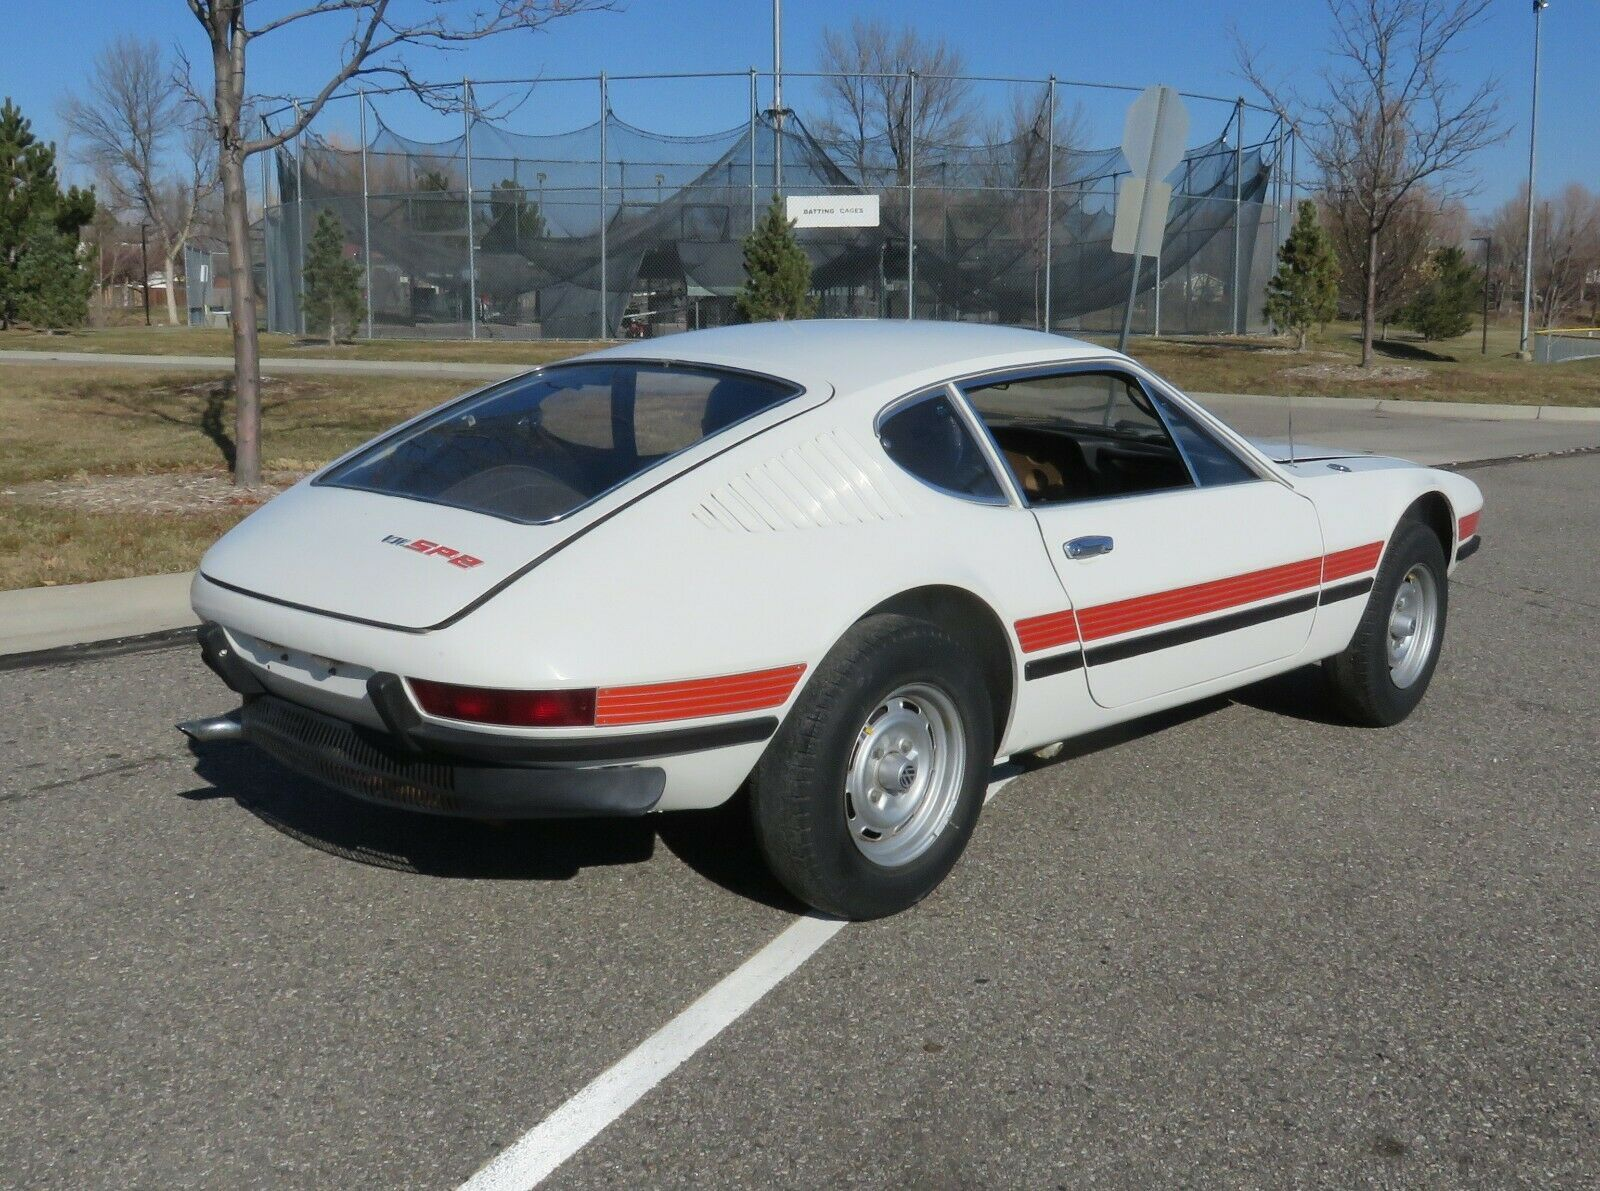 This Rare Brazil Market Volkswagen Sp2 Coupe Is For Sale